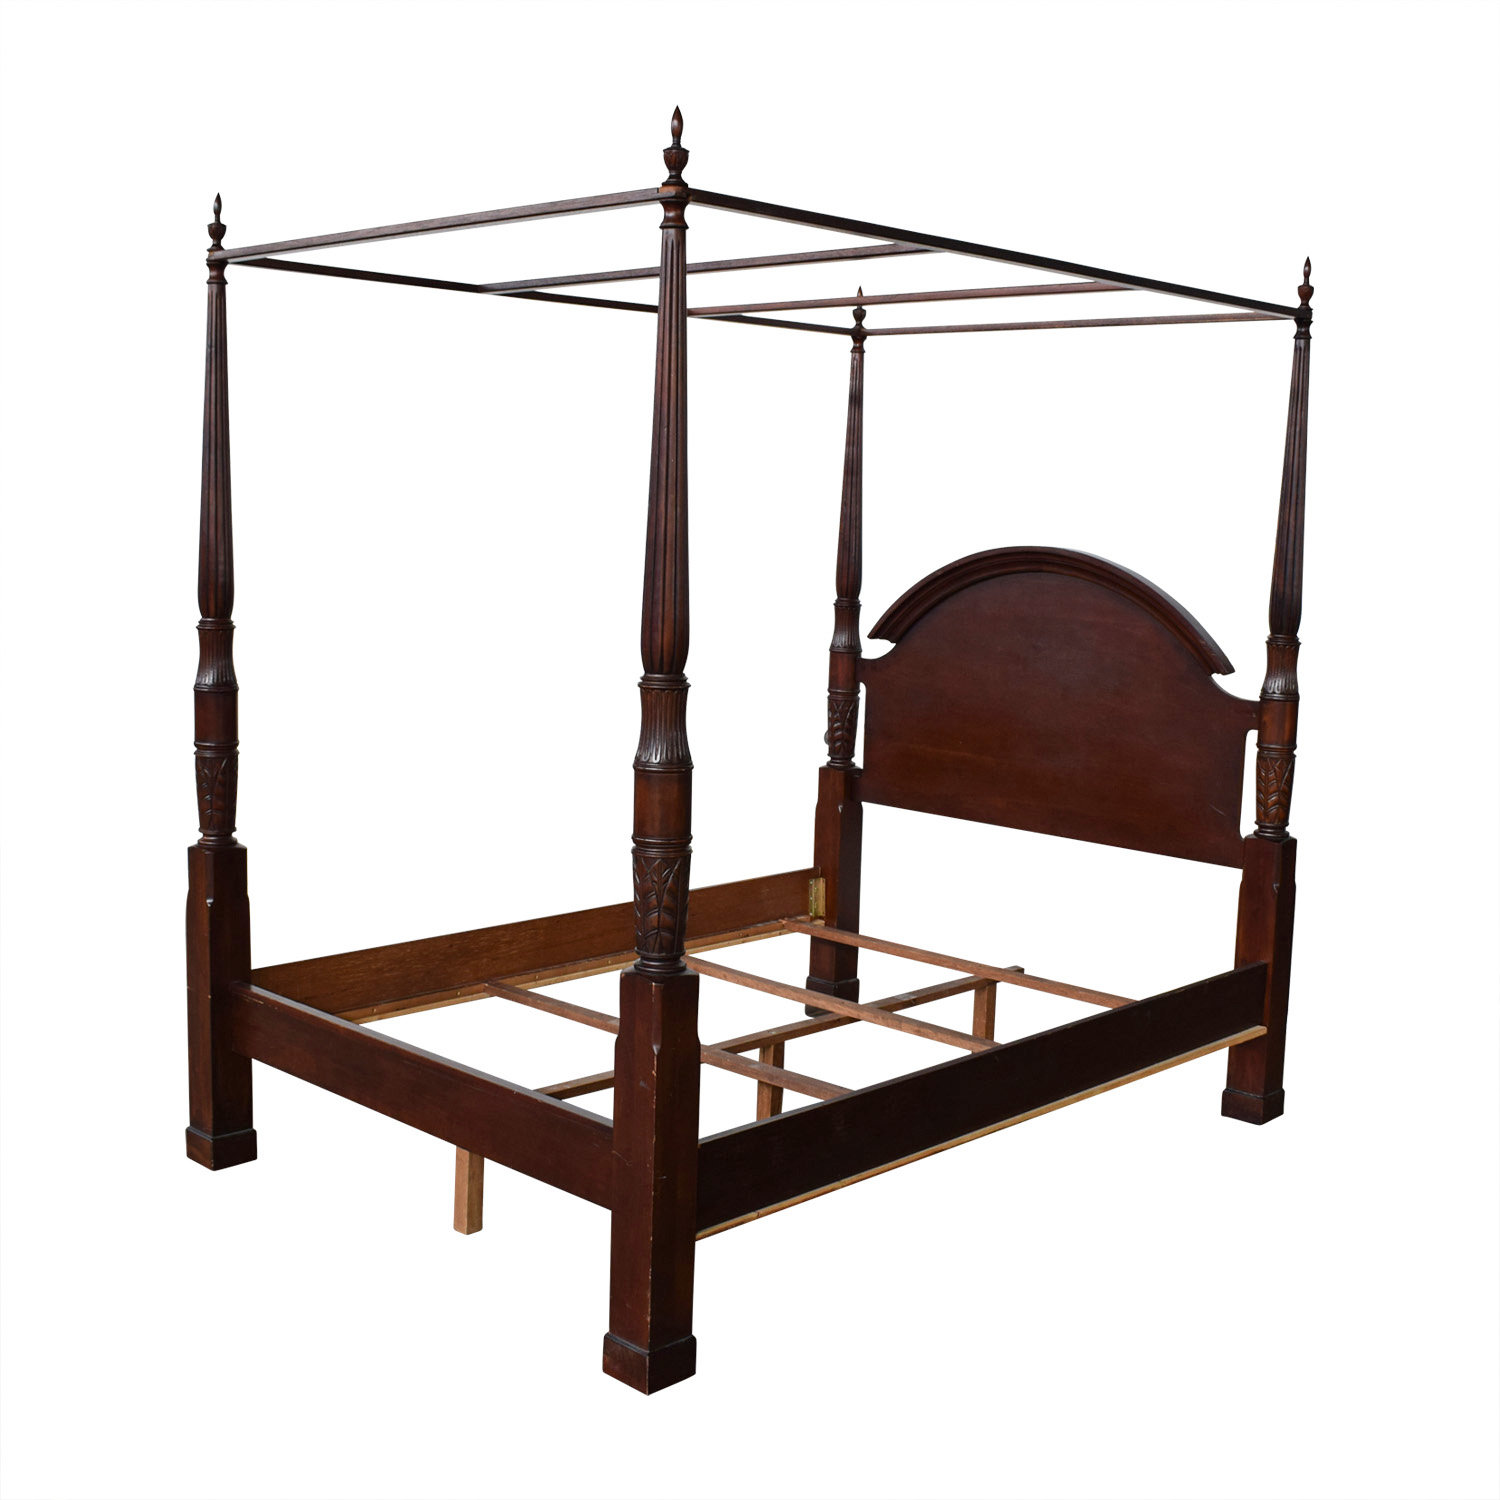 Wood Four Poster Beds 83 Off Wood Four Poster Canopy Bed Frame Beds